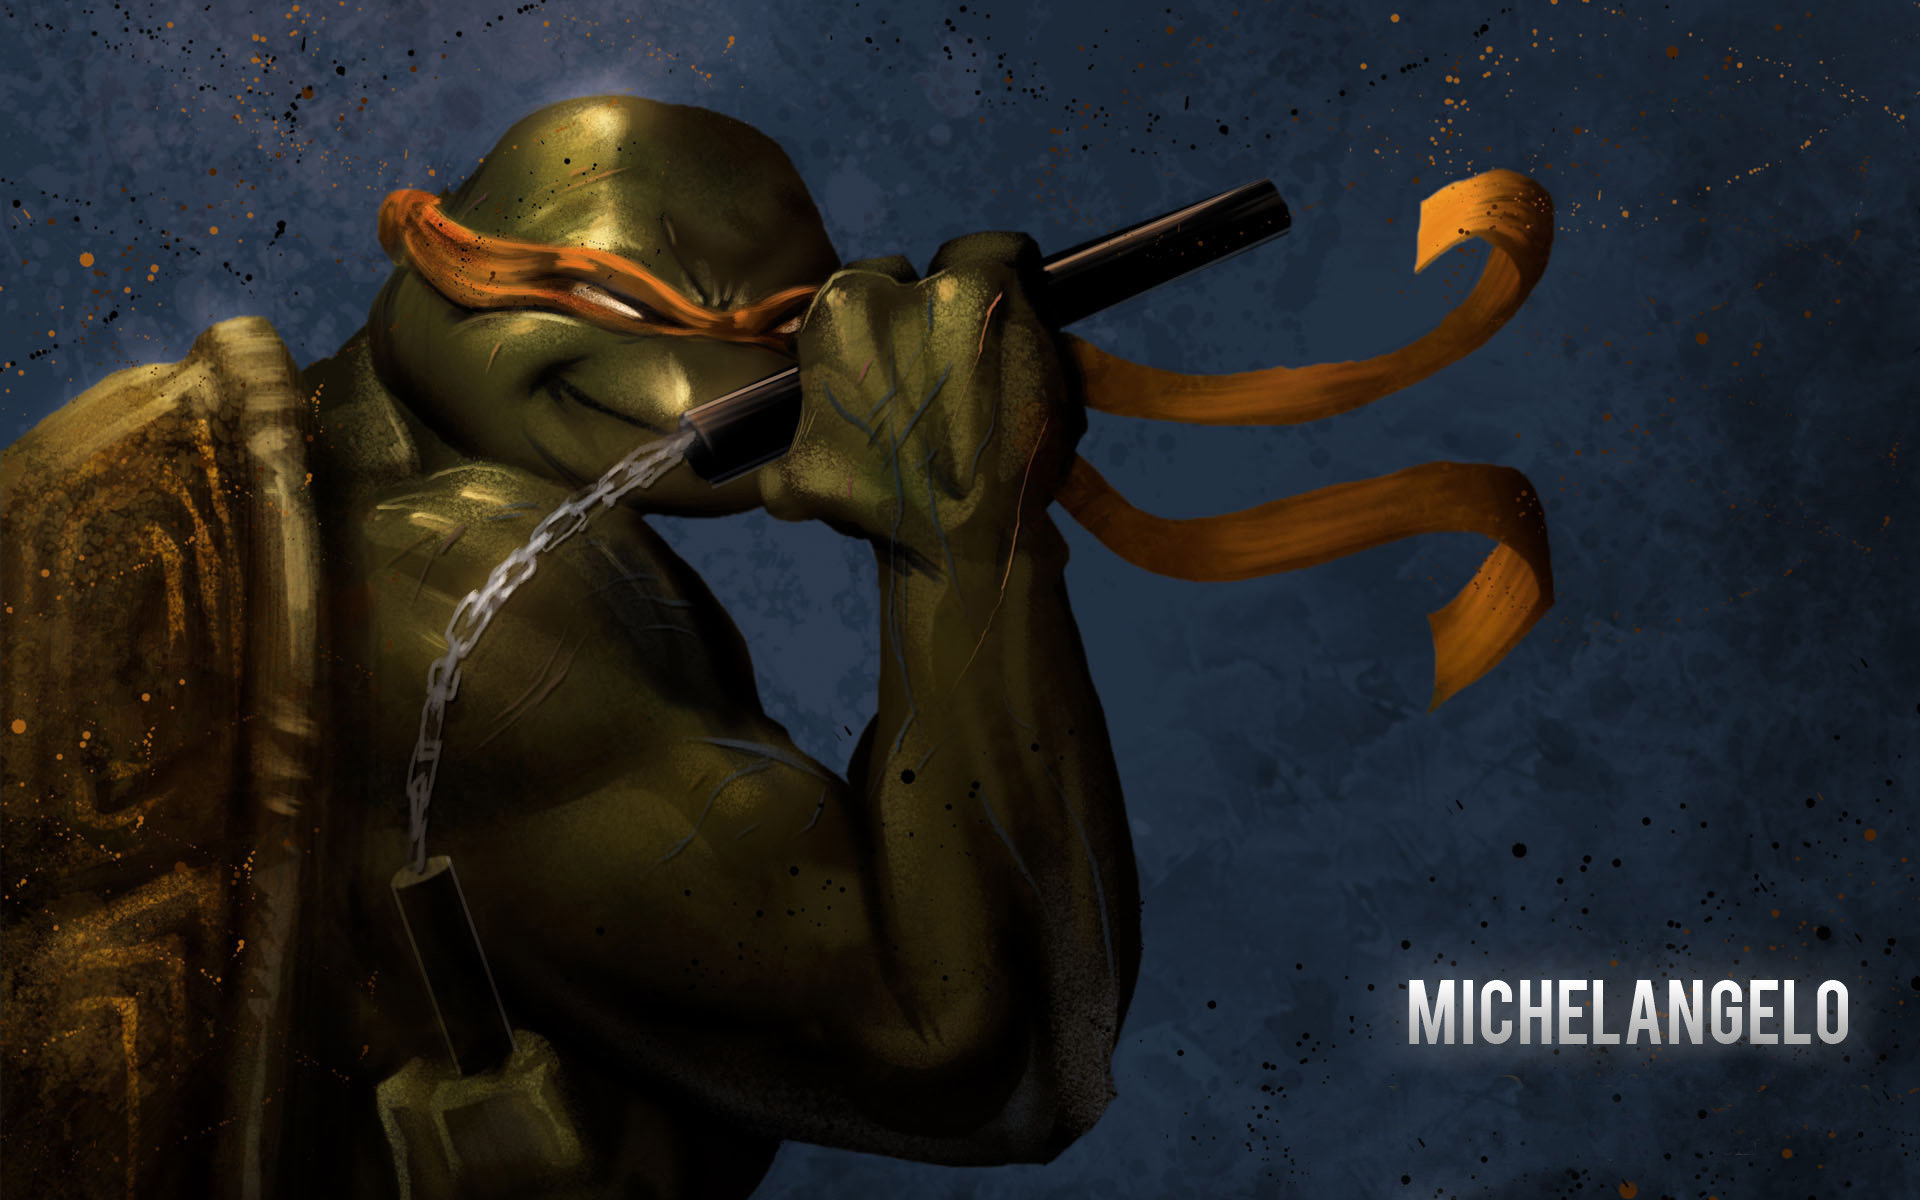 Awesome Michelangelo TMNT Free Wallpaper ID111327 For Hd 1920x1200 Desktop